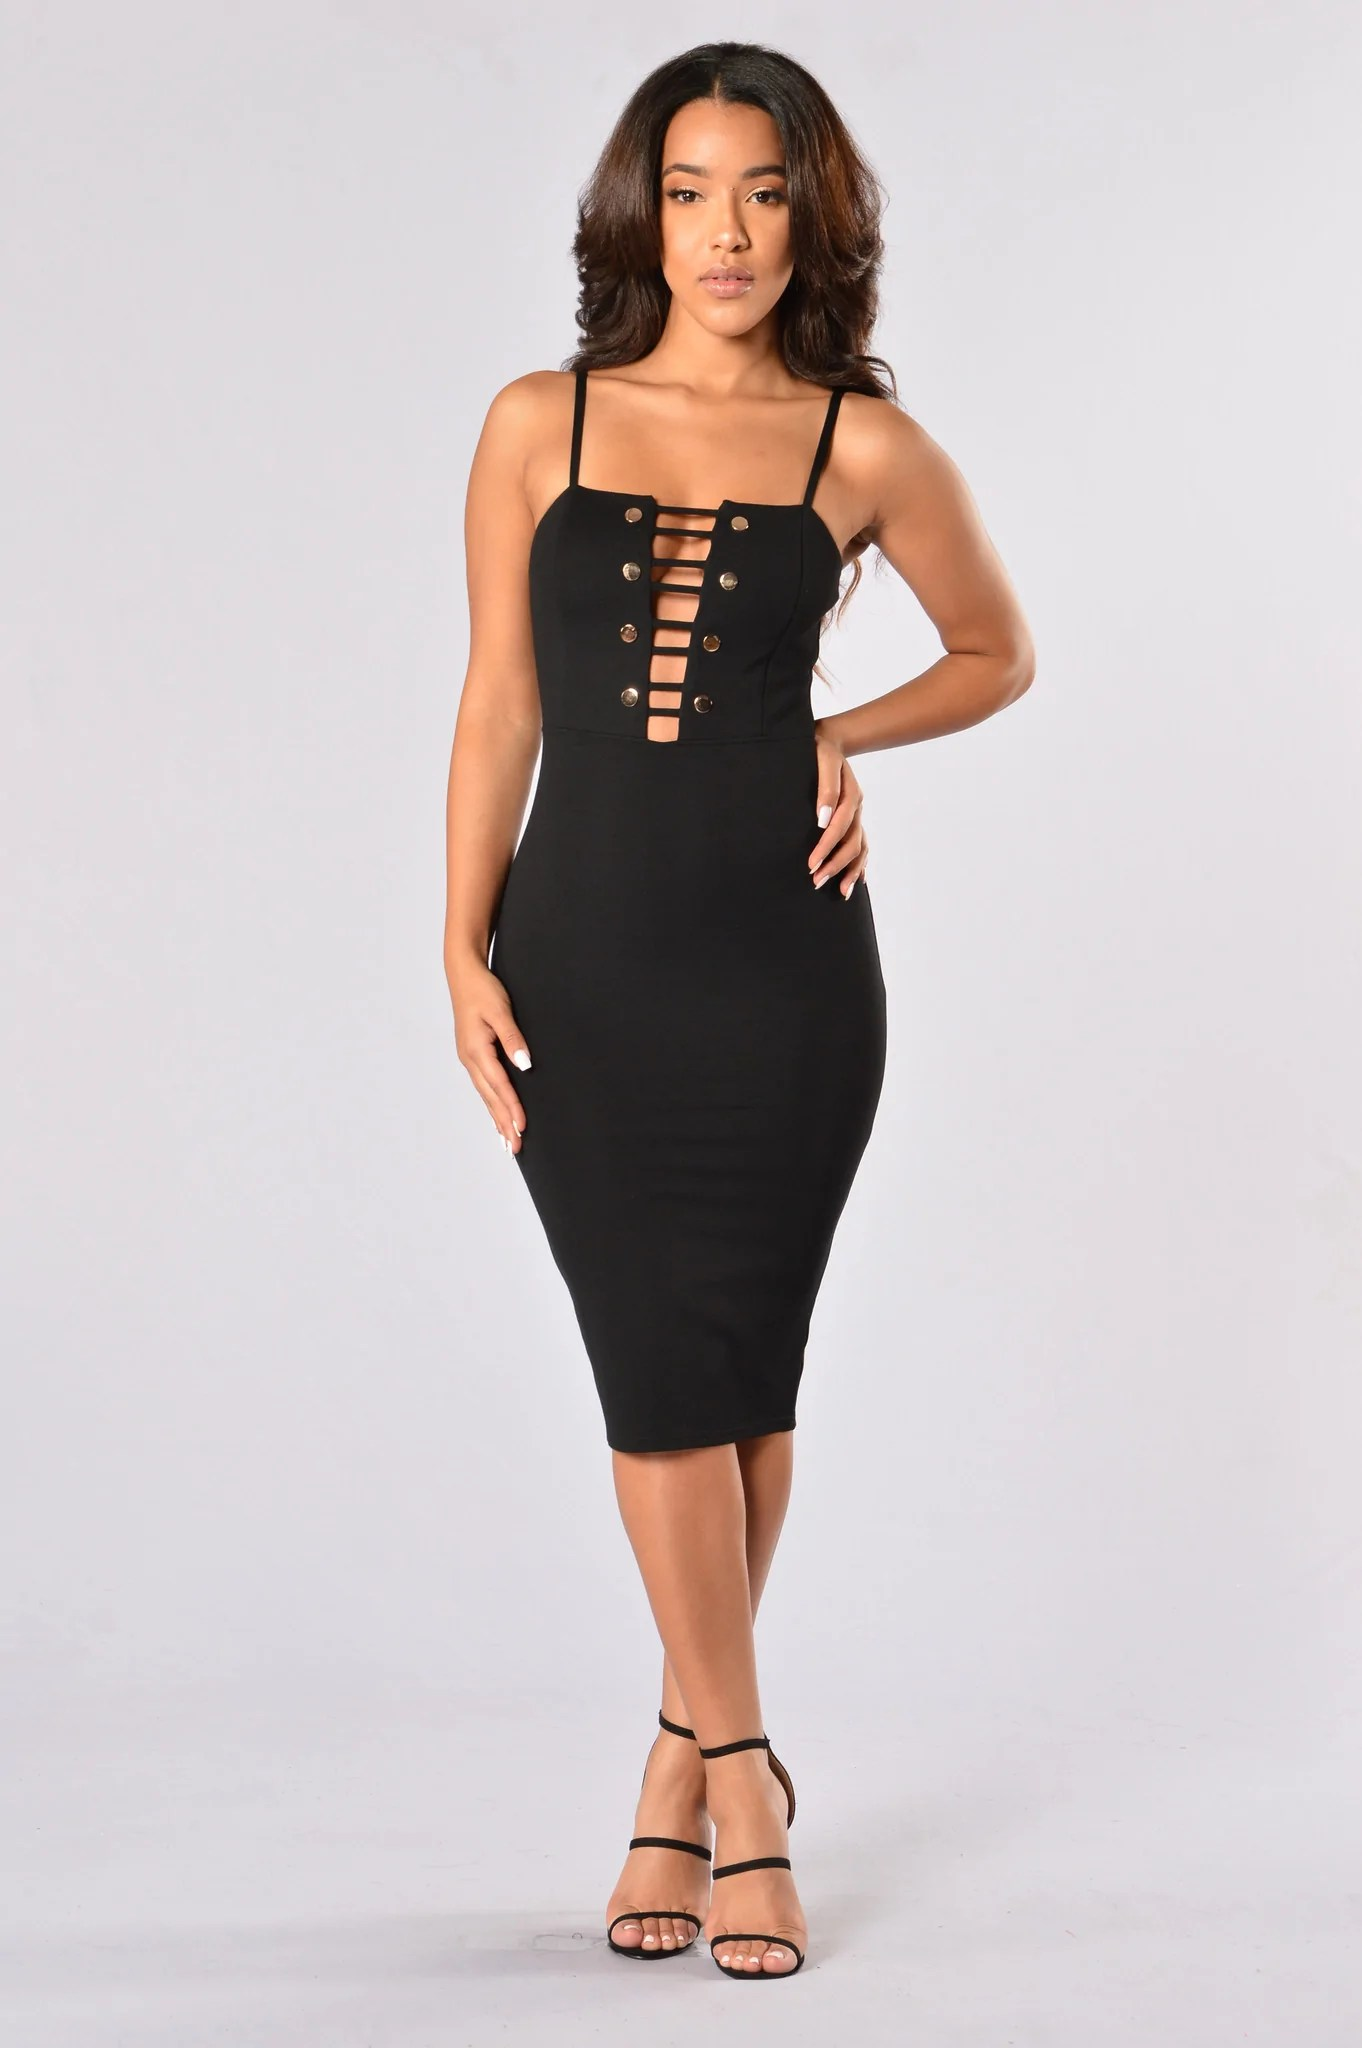 Party Chic Party Chic Dress Black